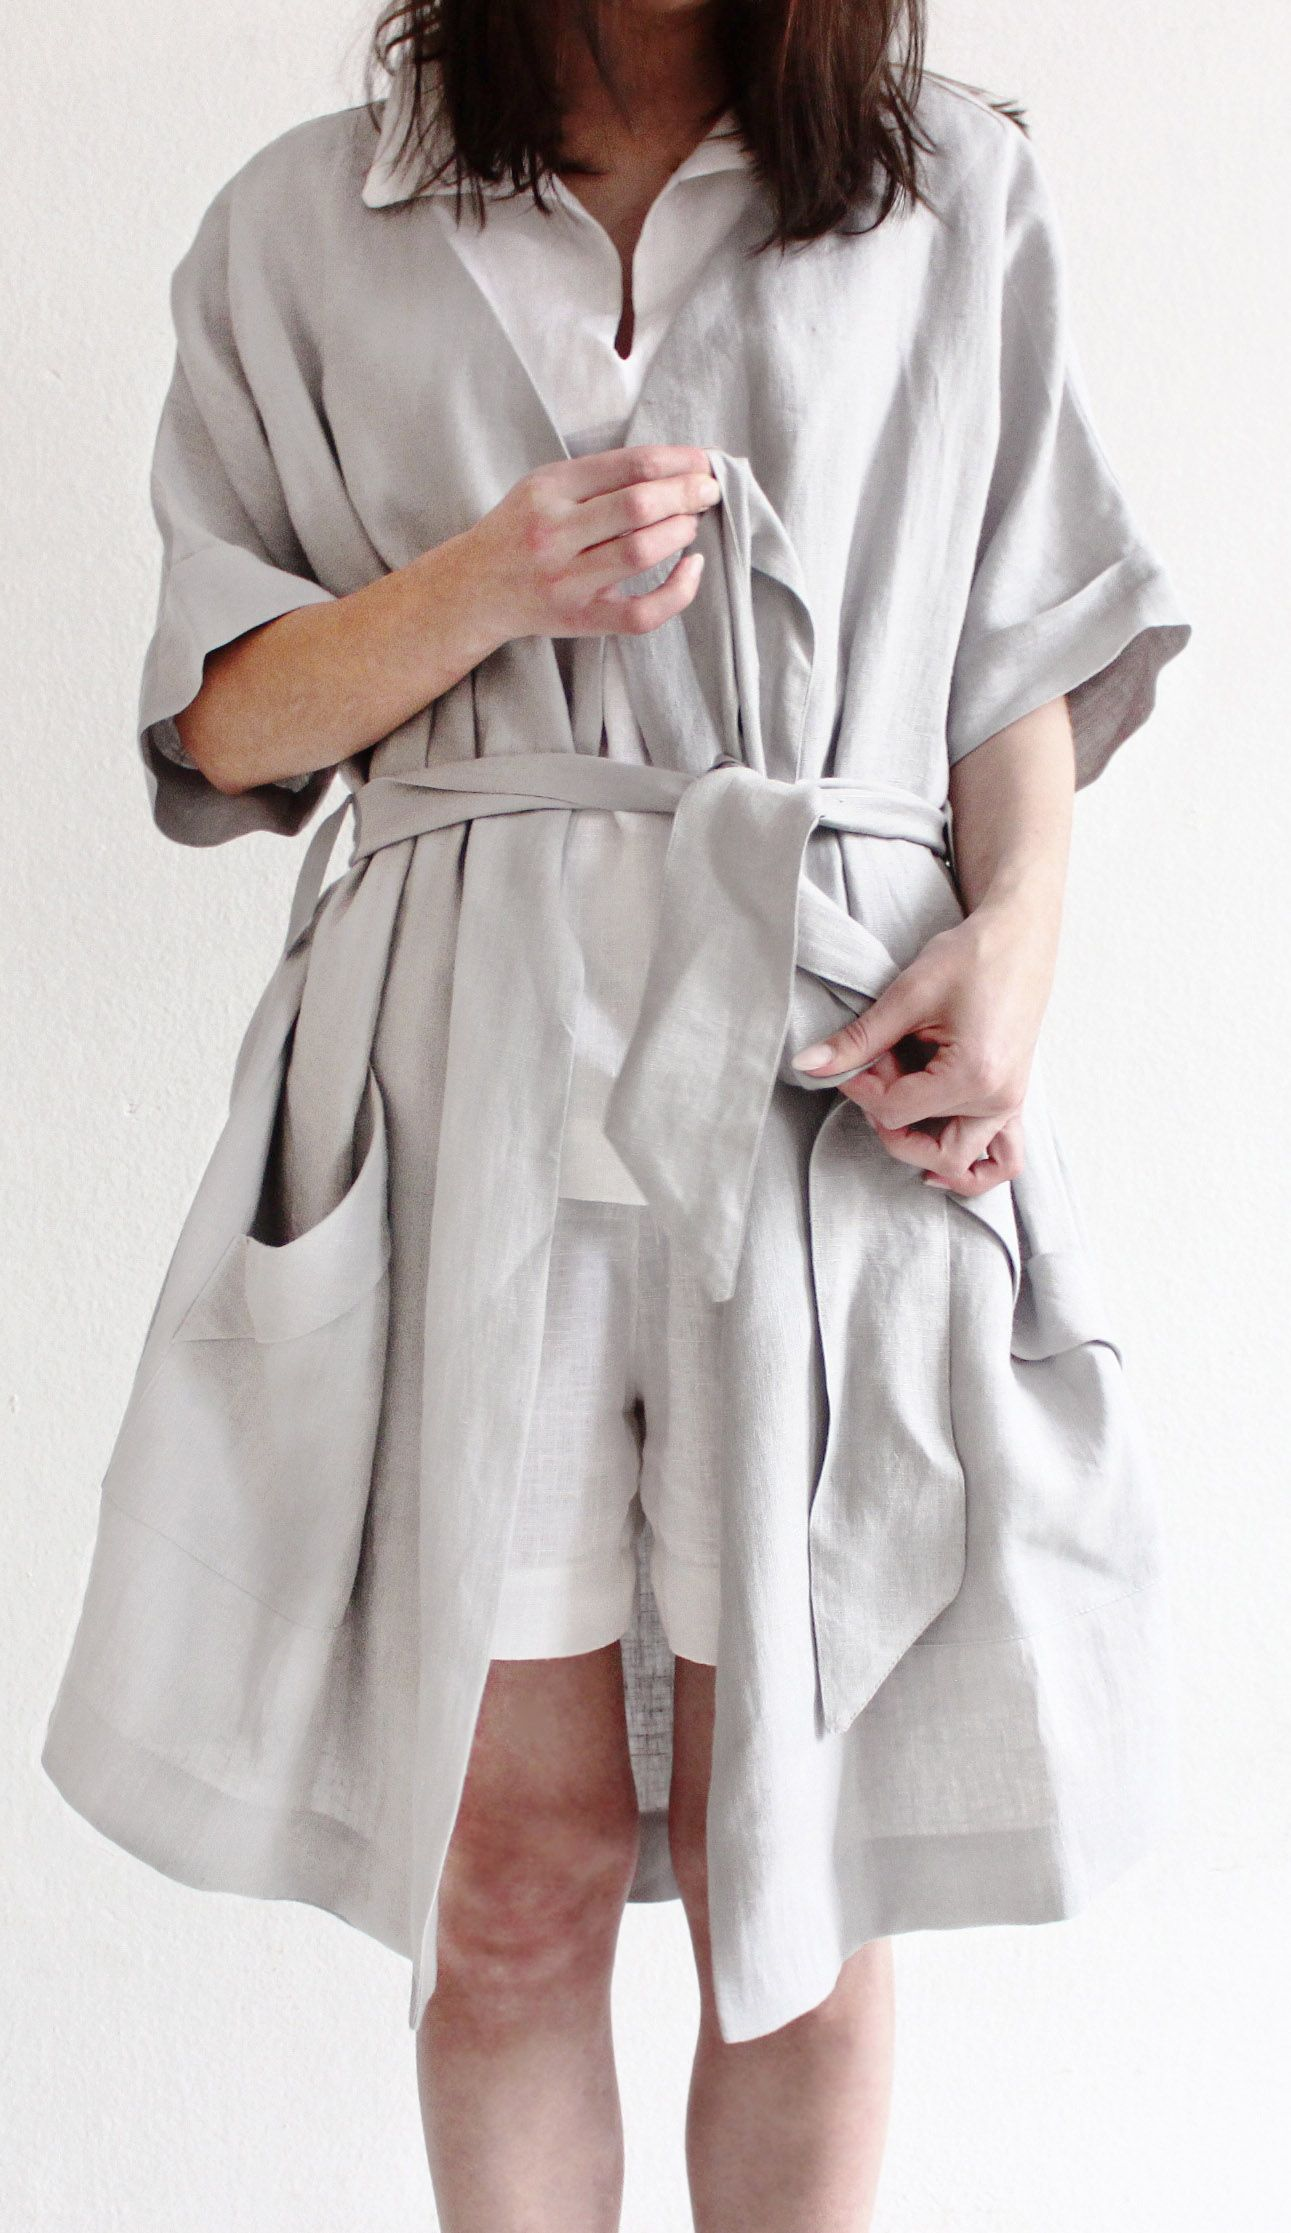 Linen dressing gown by Lovely Home Idea. Stonewashed linen bathrobe. f9a8a242d